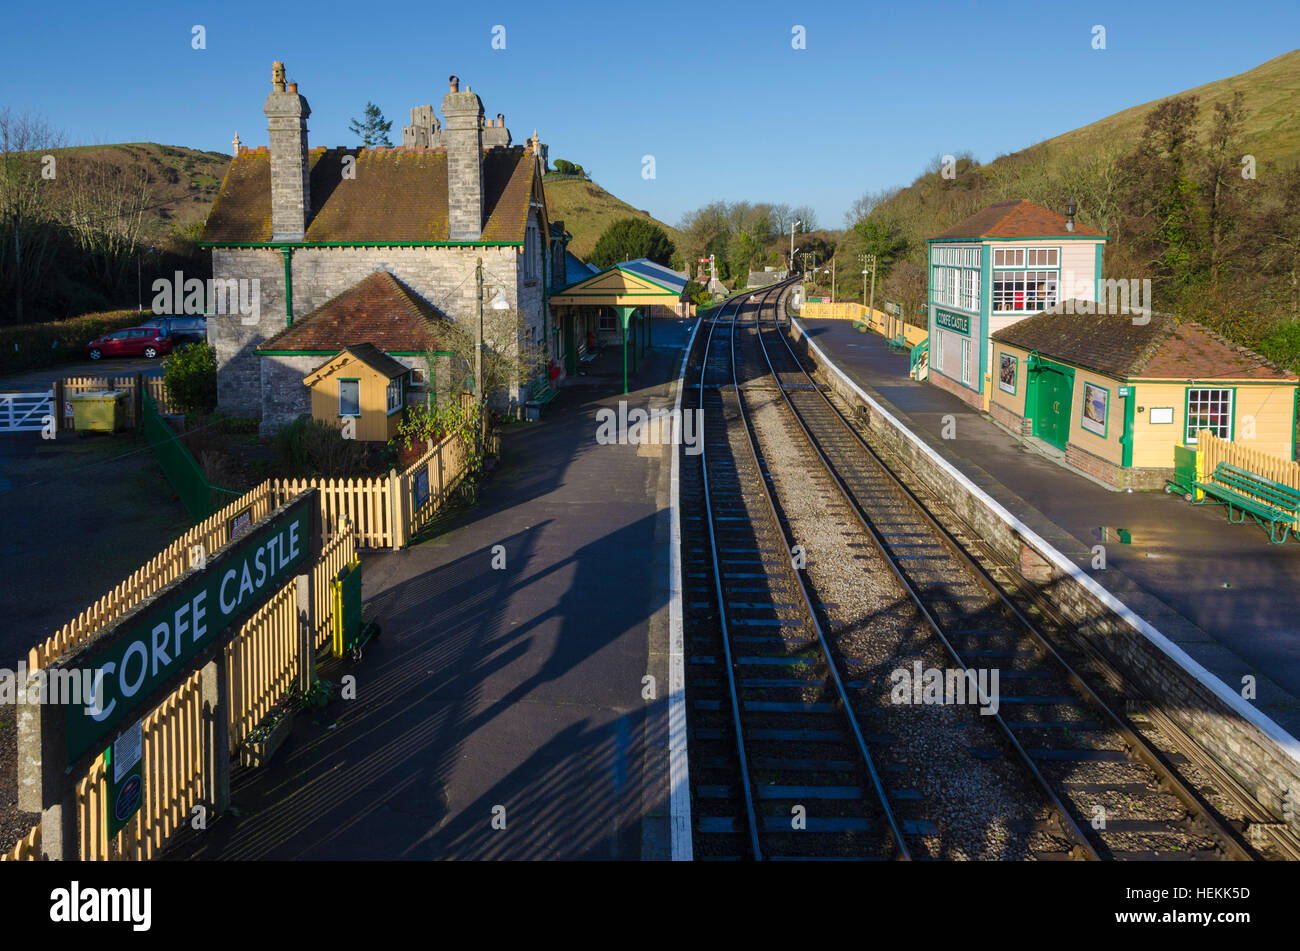 Corfe Castle, Dorset, UK.  22nd December 2016.  UK Weather.  Corfe Castle station in Dorset on the restored Swanage Railway basking under clear sunny blue skies.  The footbridge across the tracks is a perfect vantage point to view the ruins of the castle which give the village its name.  Picture: Graham Hunt/Alamy Live News Stock Photo